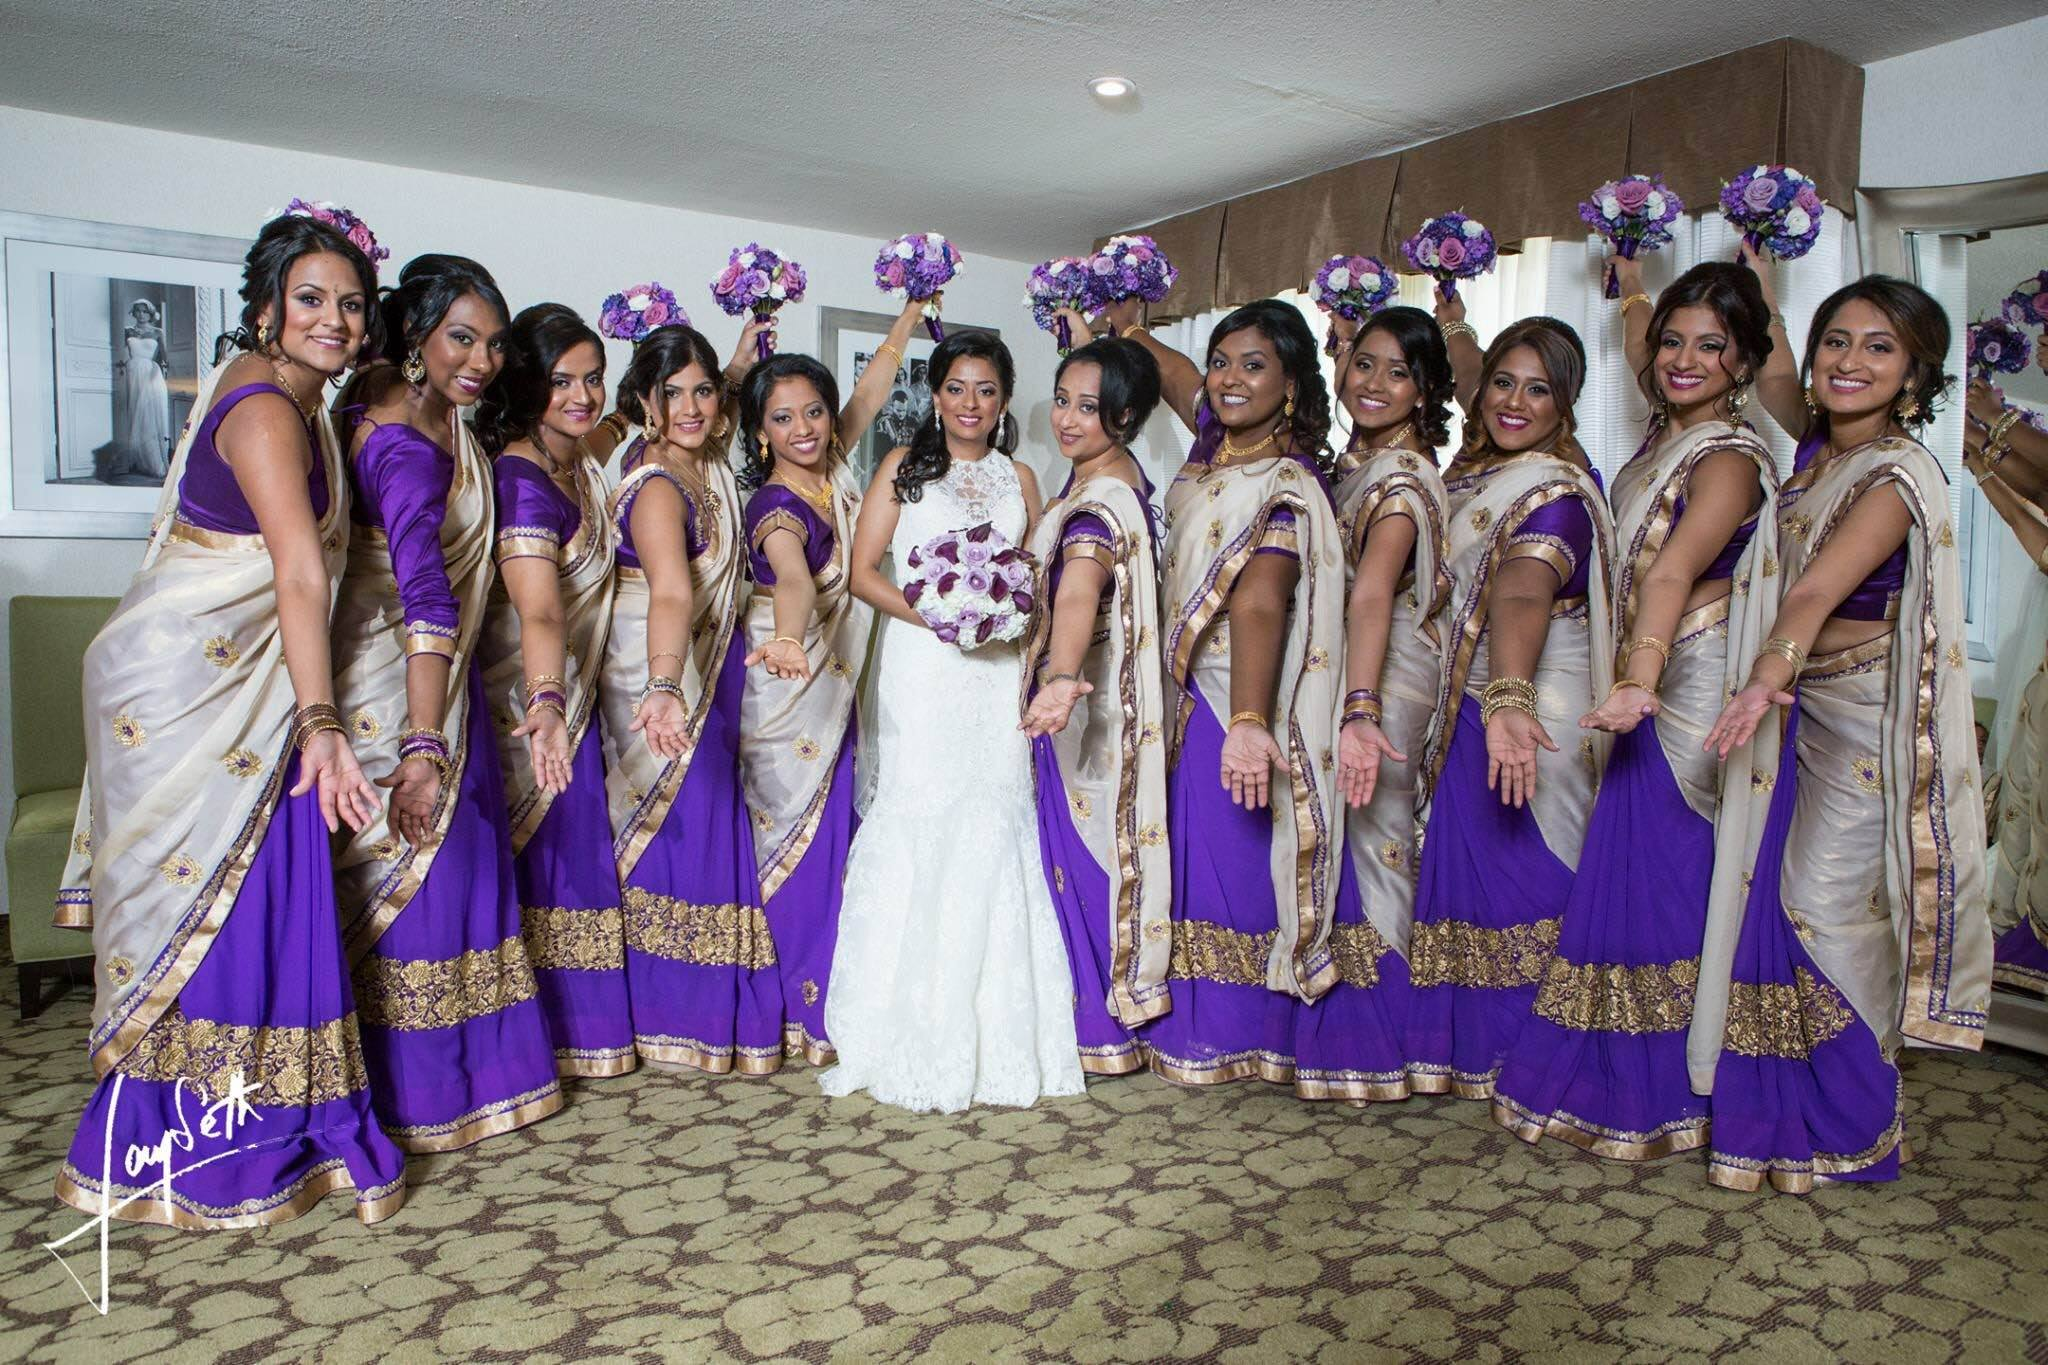 1/2 & 1/2 Bridesmaids Sarees